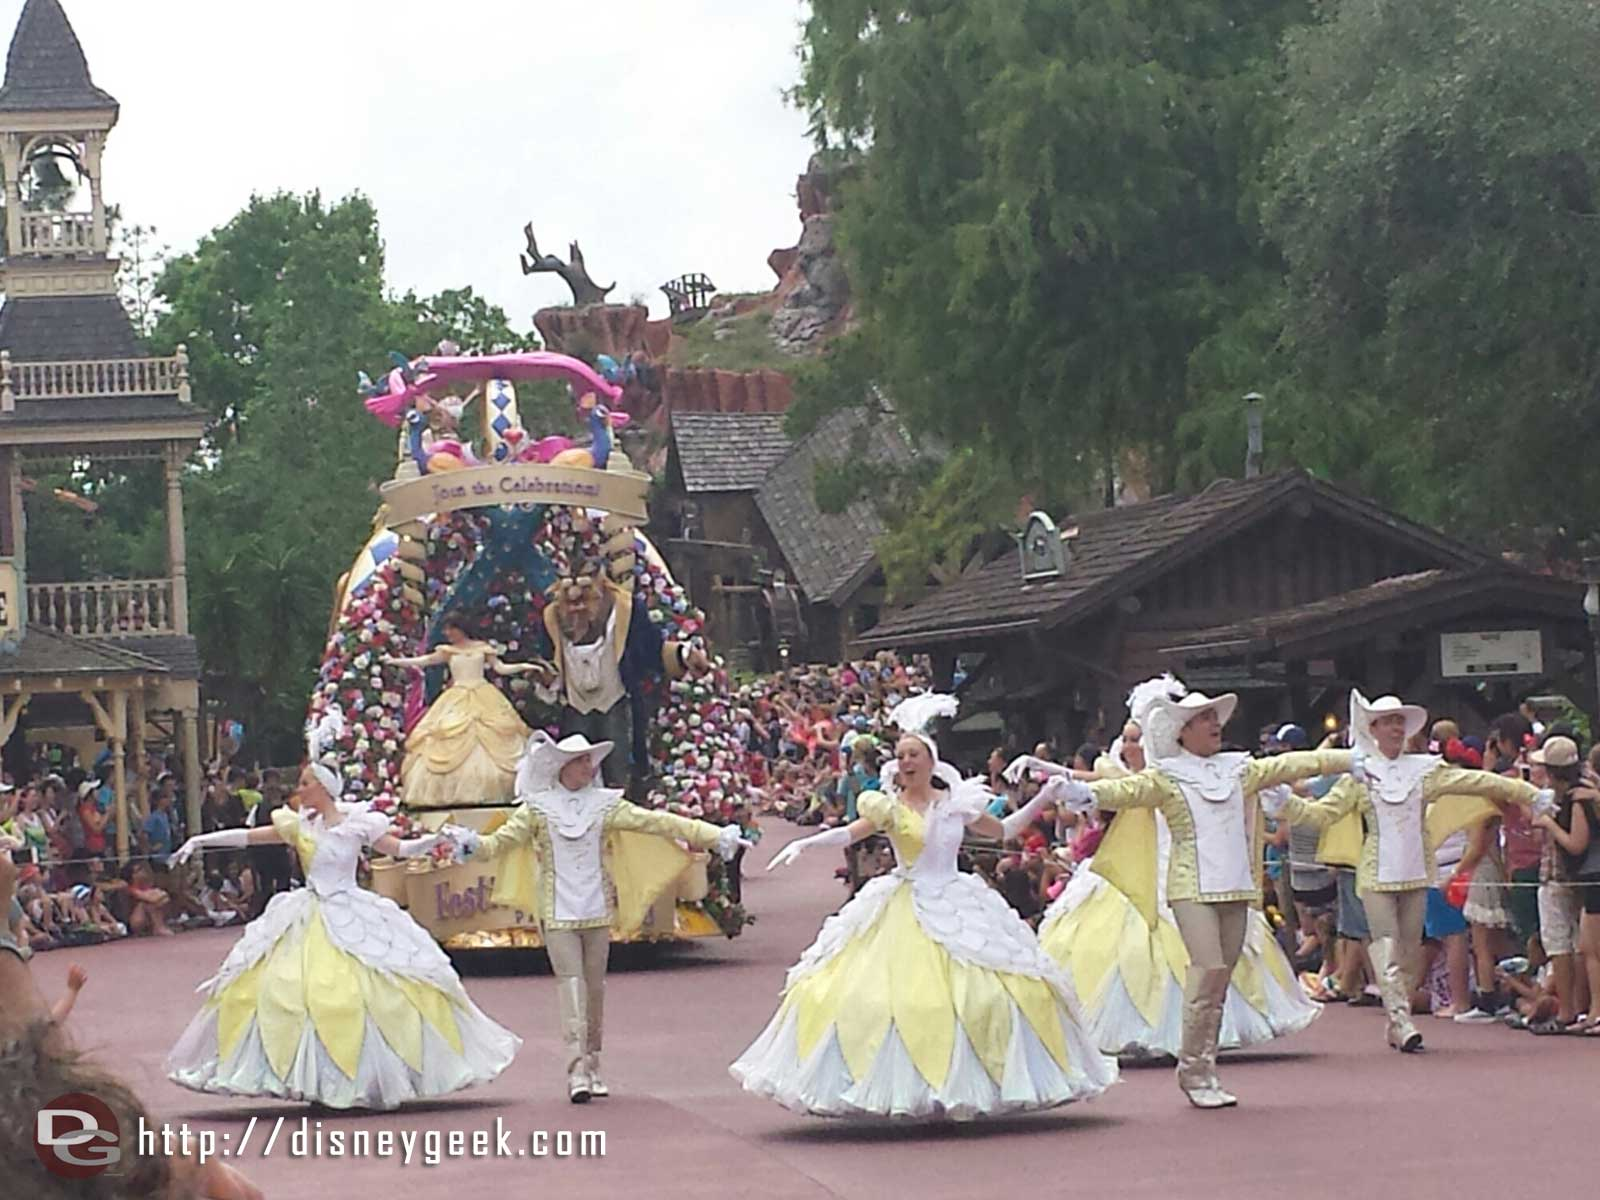 Beauty & the Beast lead the Festival of Fantasy parade #WDW Magic Kingdom